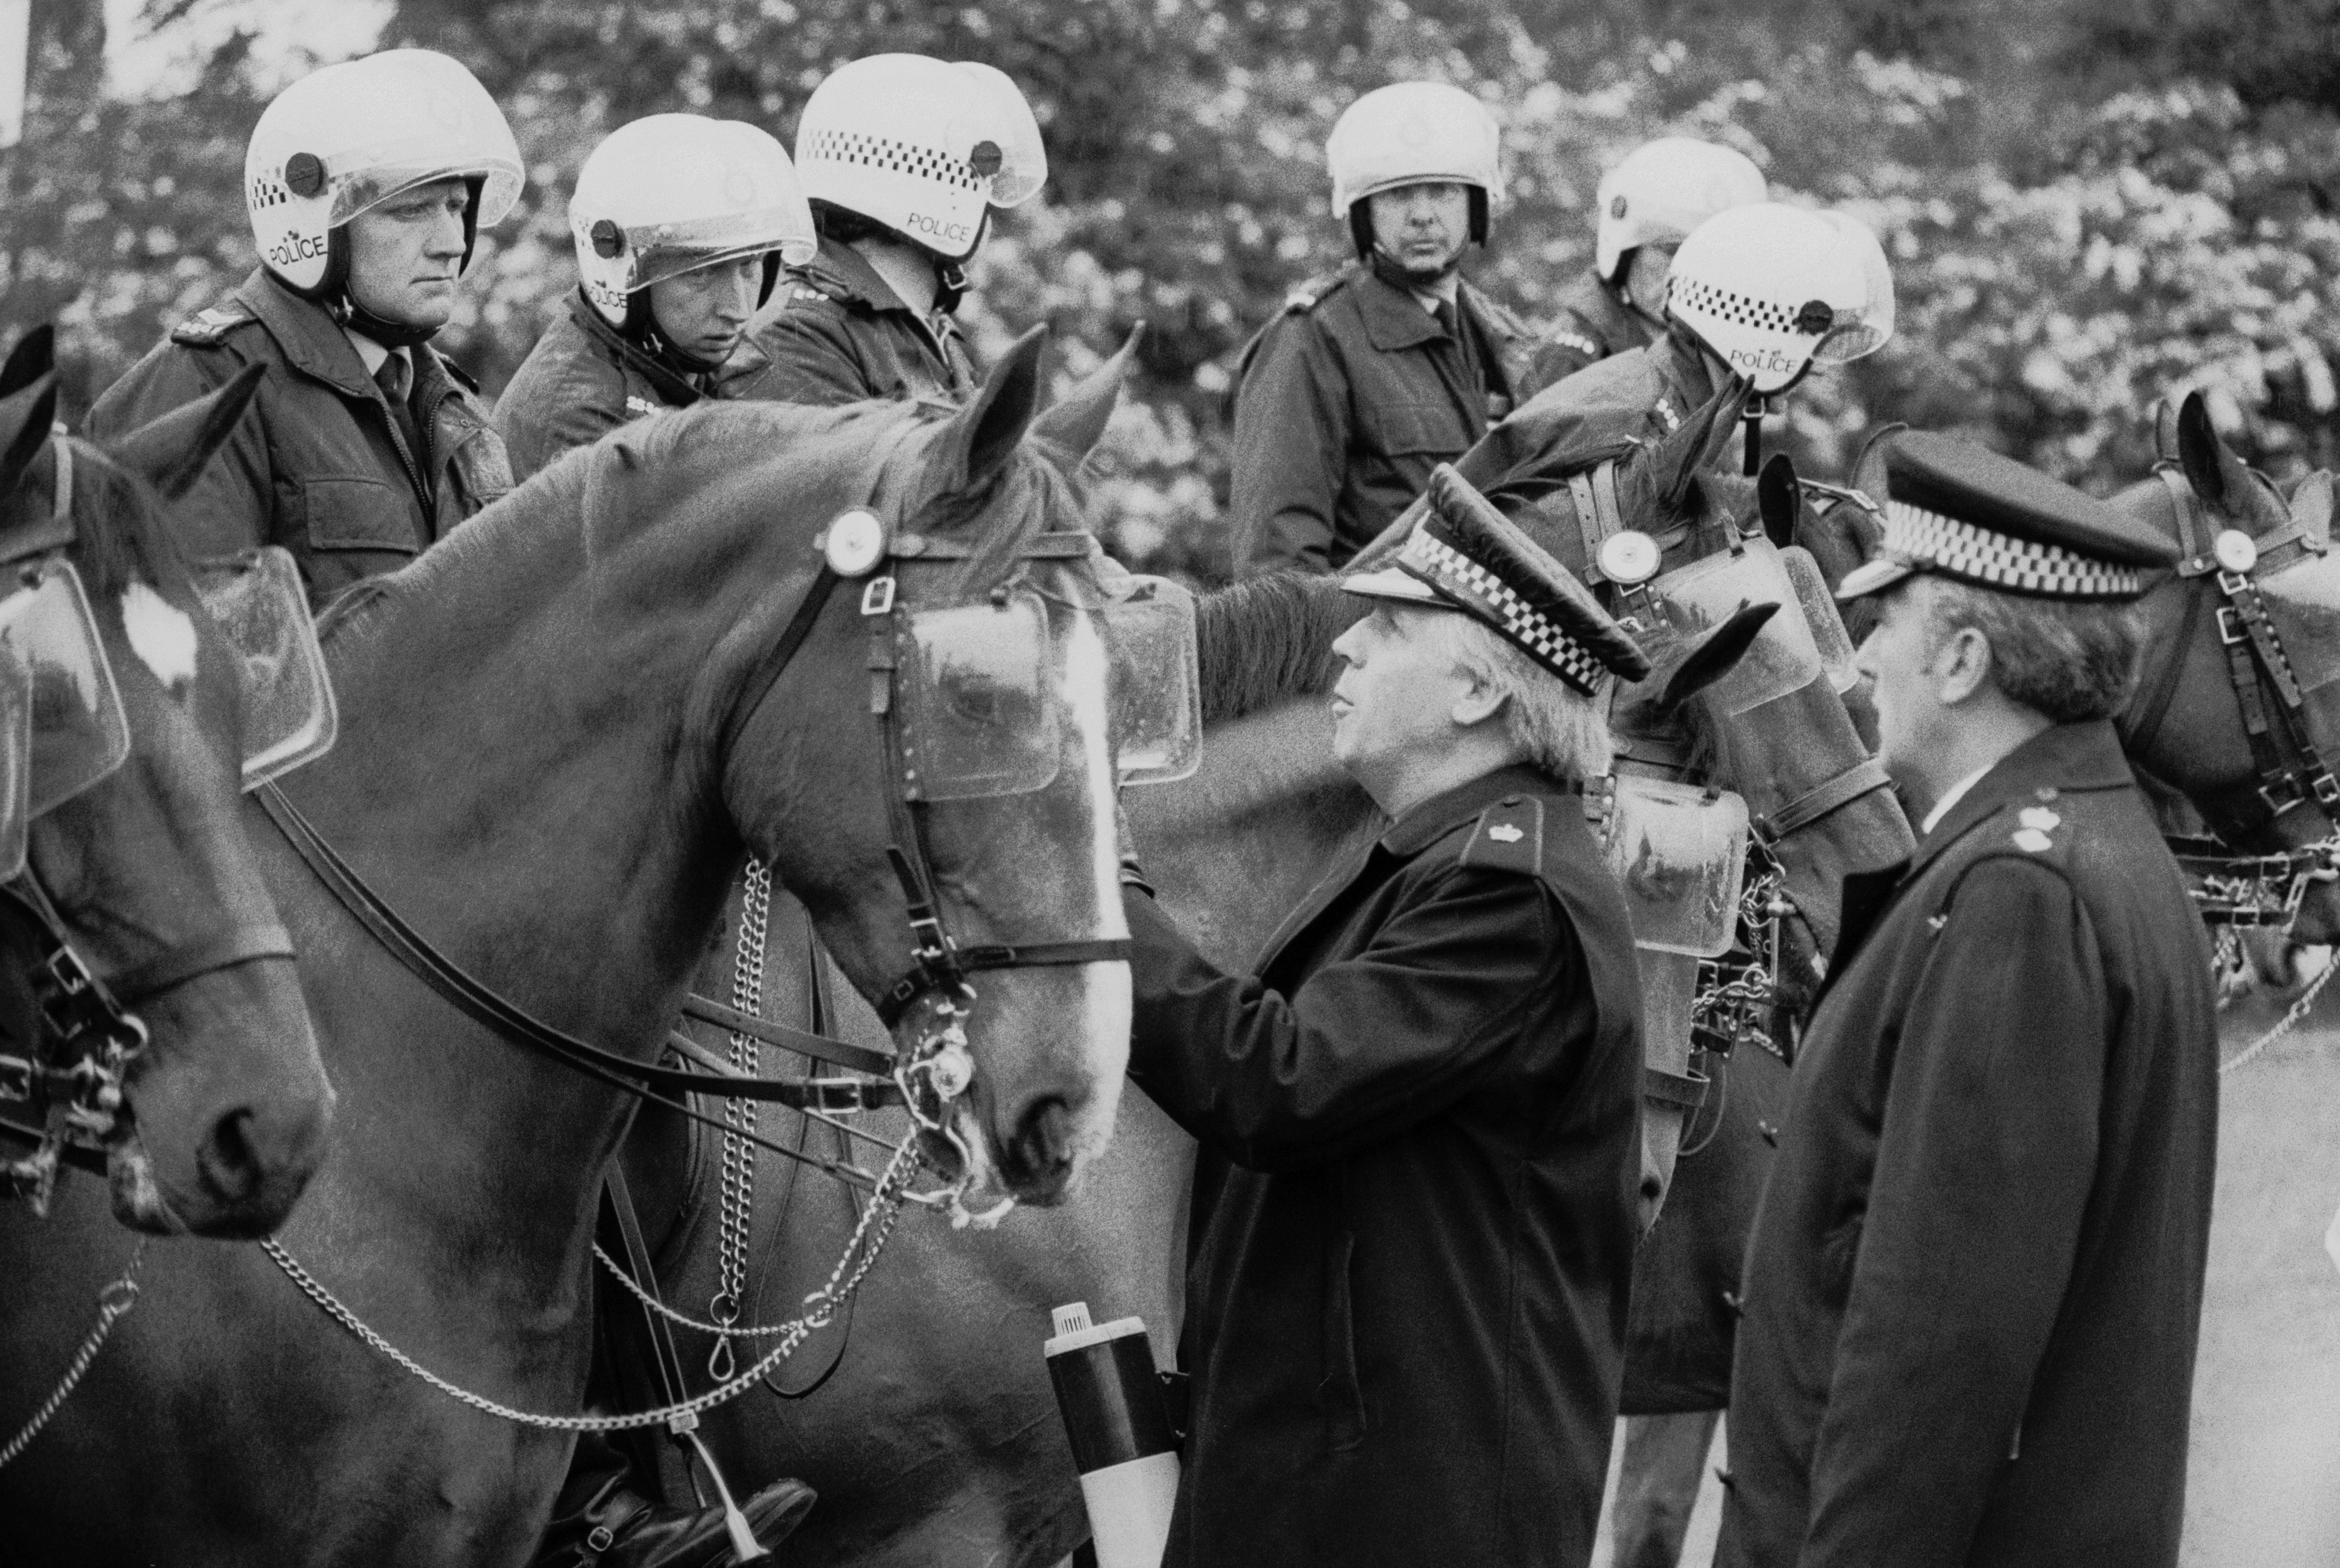 Mounted police receive instructions at a demonstration at Orgreave Colliery, South Yorkshire, during the miners' strike, 2nd June 1984. (Photo by Steve Eason/Hulton Archive/Getty Images)